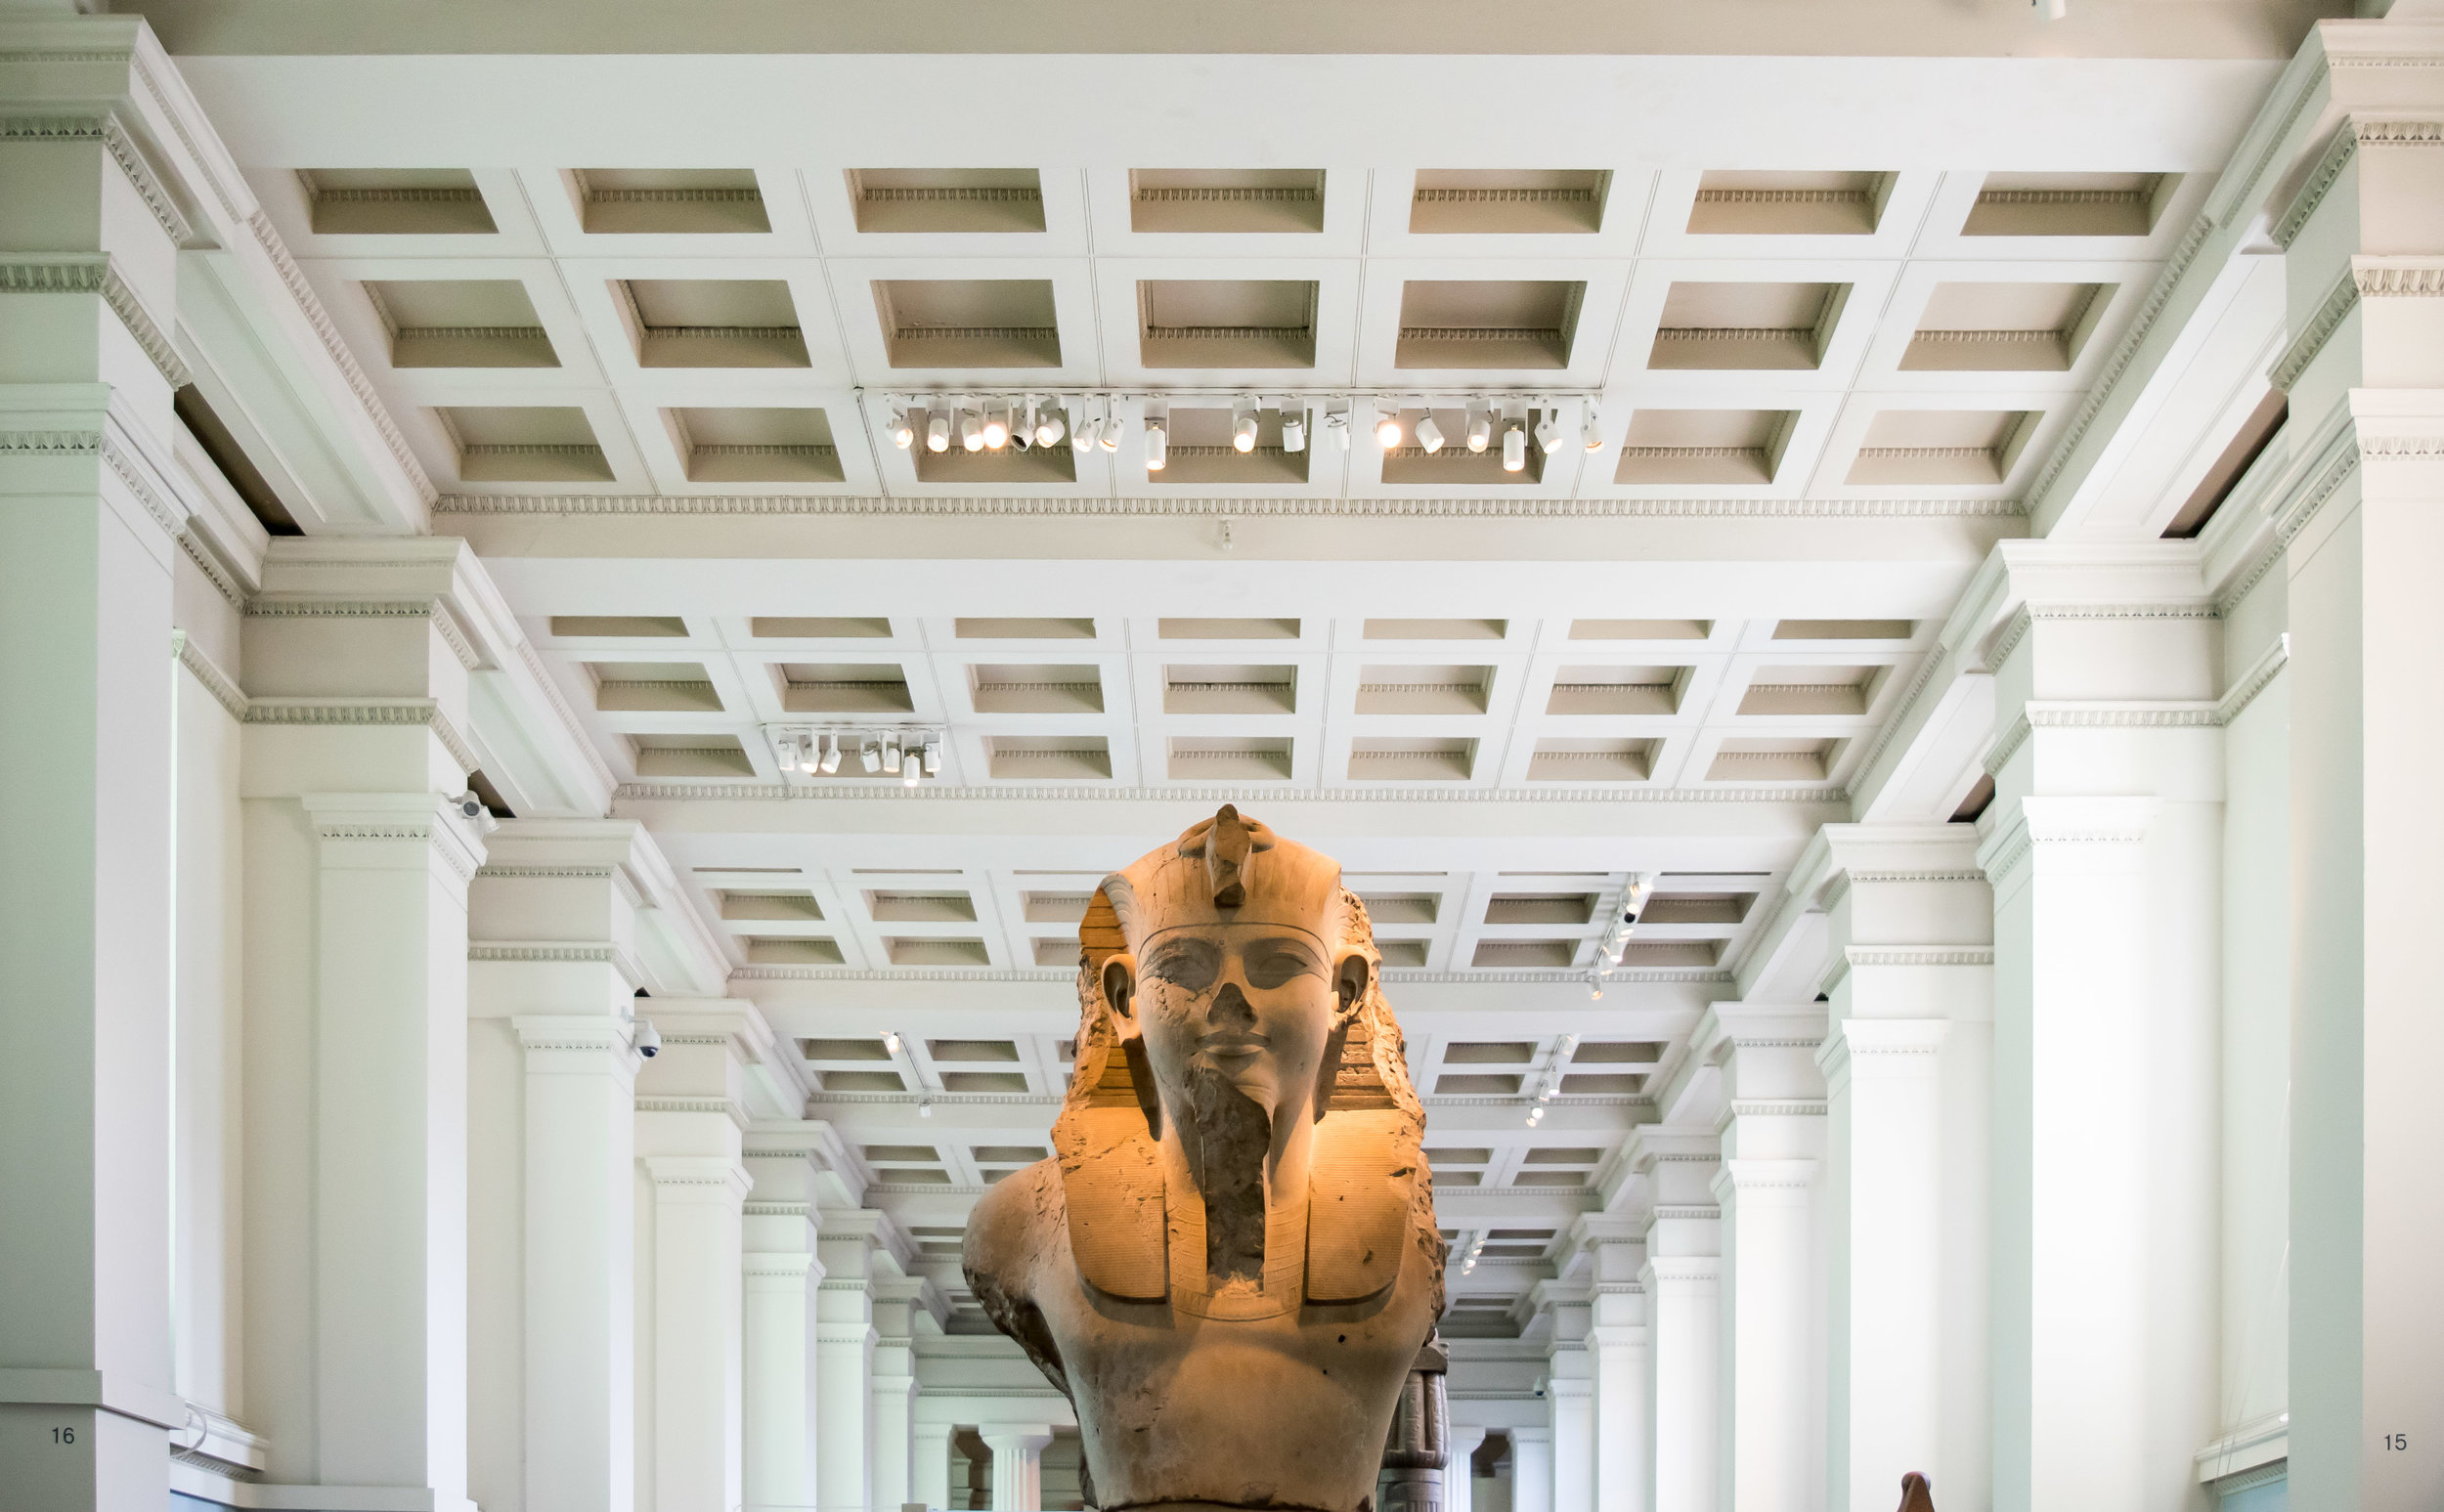 Stone bust of a Pharaoh in the Egyptian Sculpture Gallery of the British Museum